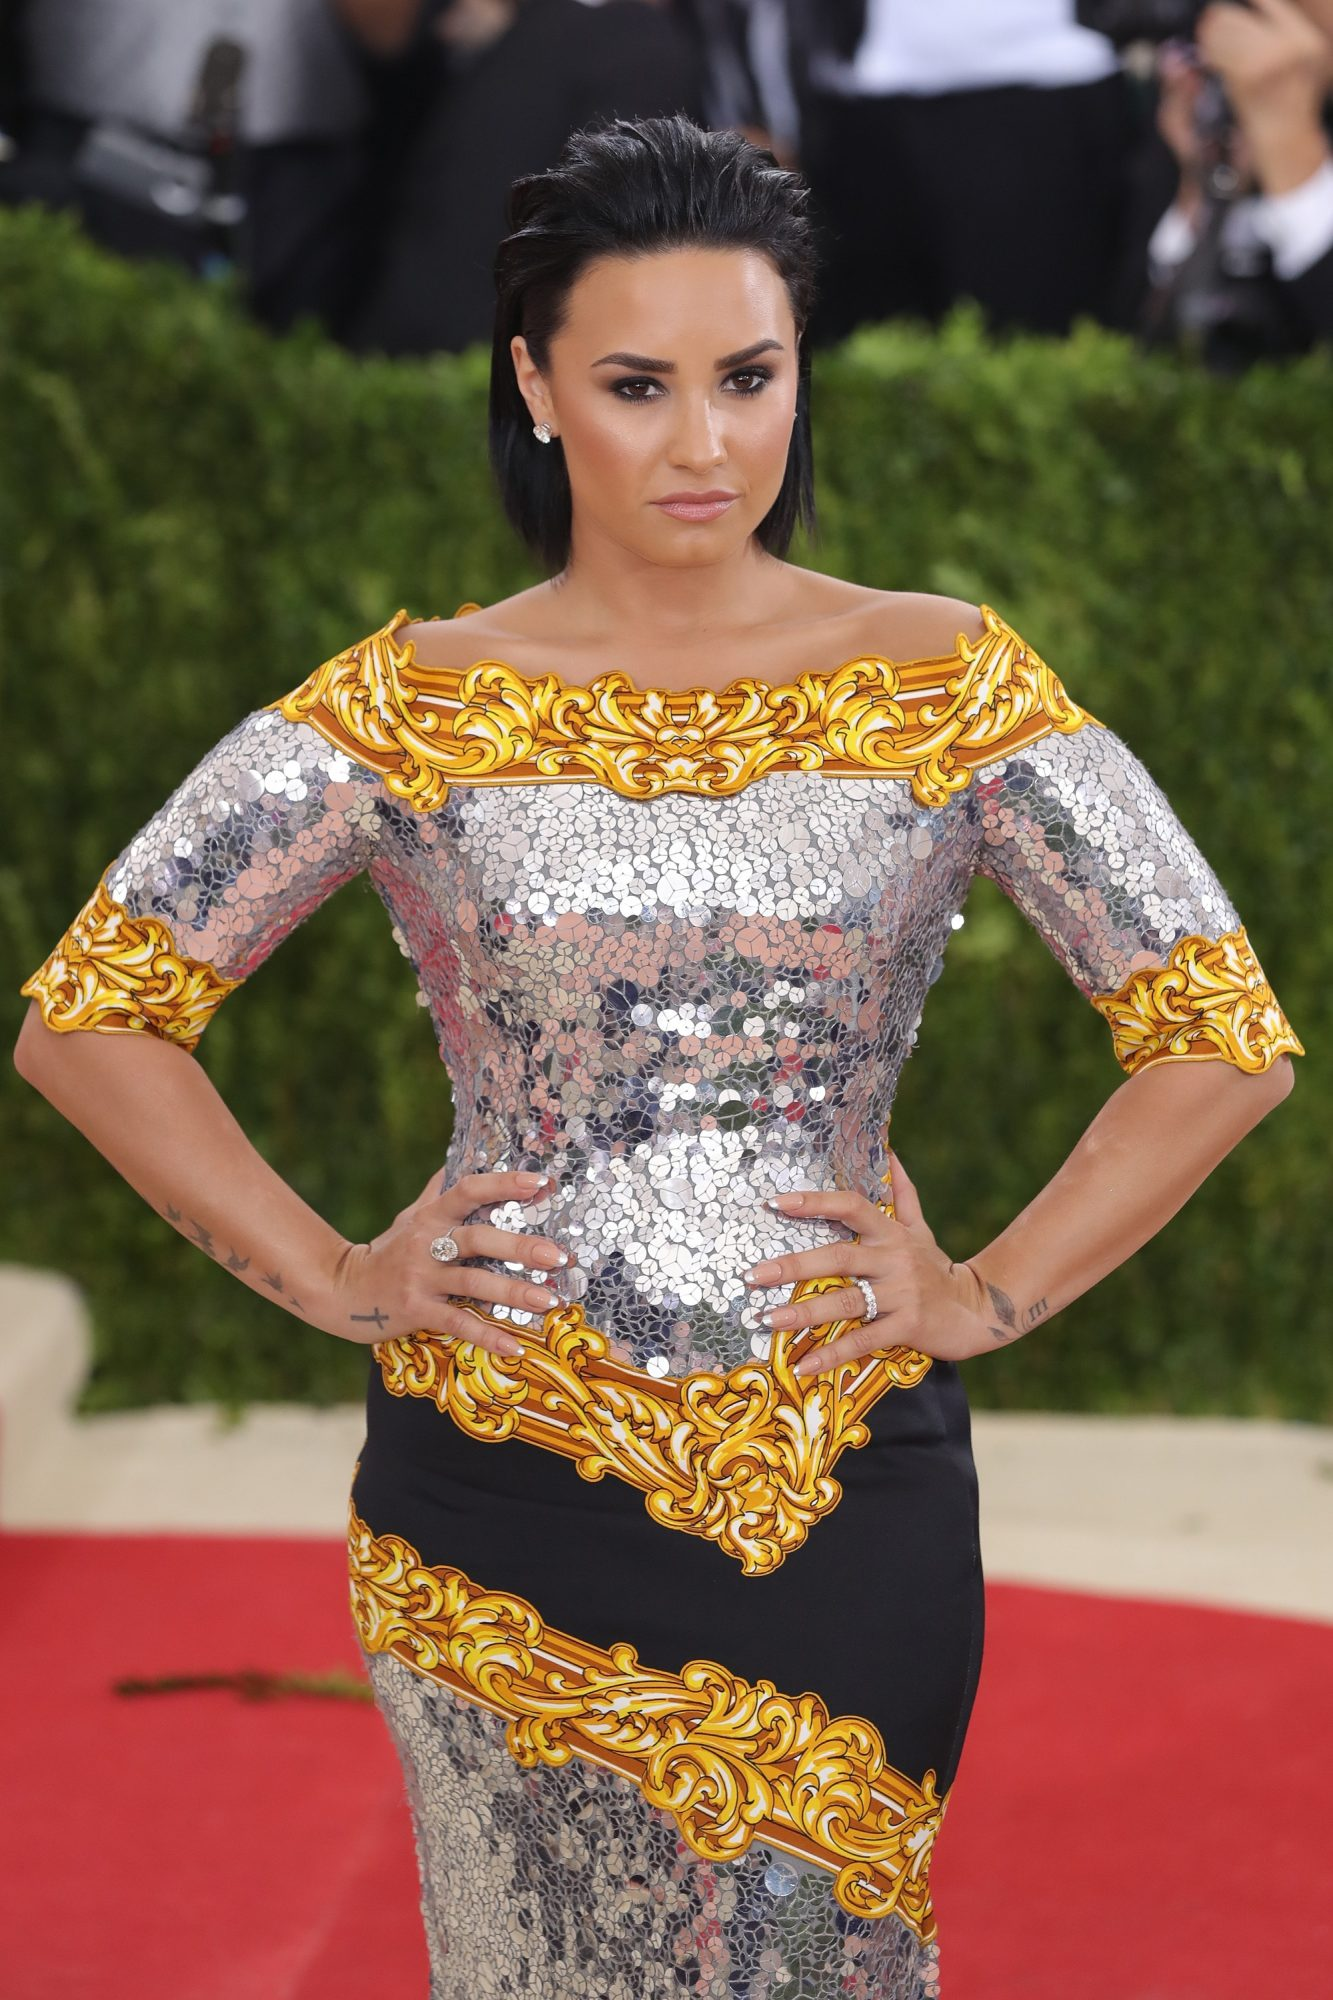 Demi Lovato attends the  Manus x Machina: Fashion In An Age Of Technology  Costume Institute Gala.